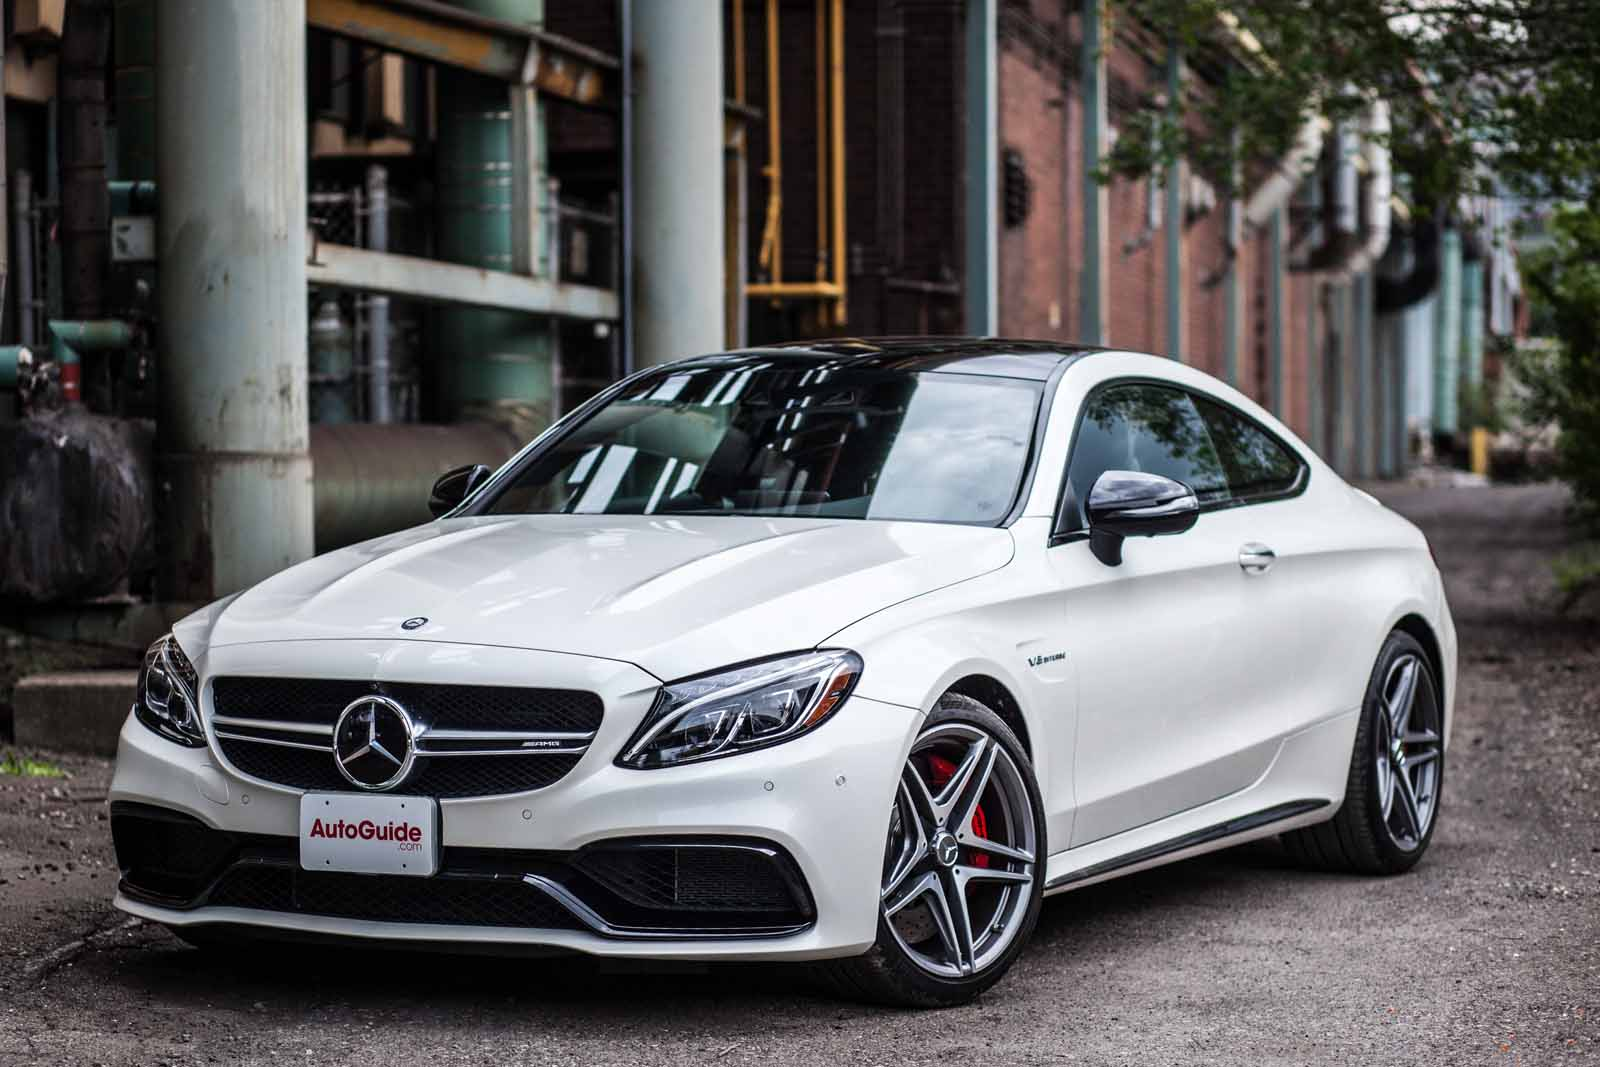 2017 mercedes amg c63 s coupe review news. Black Bedroom Furniture Sets. Home Design Ideas